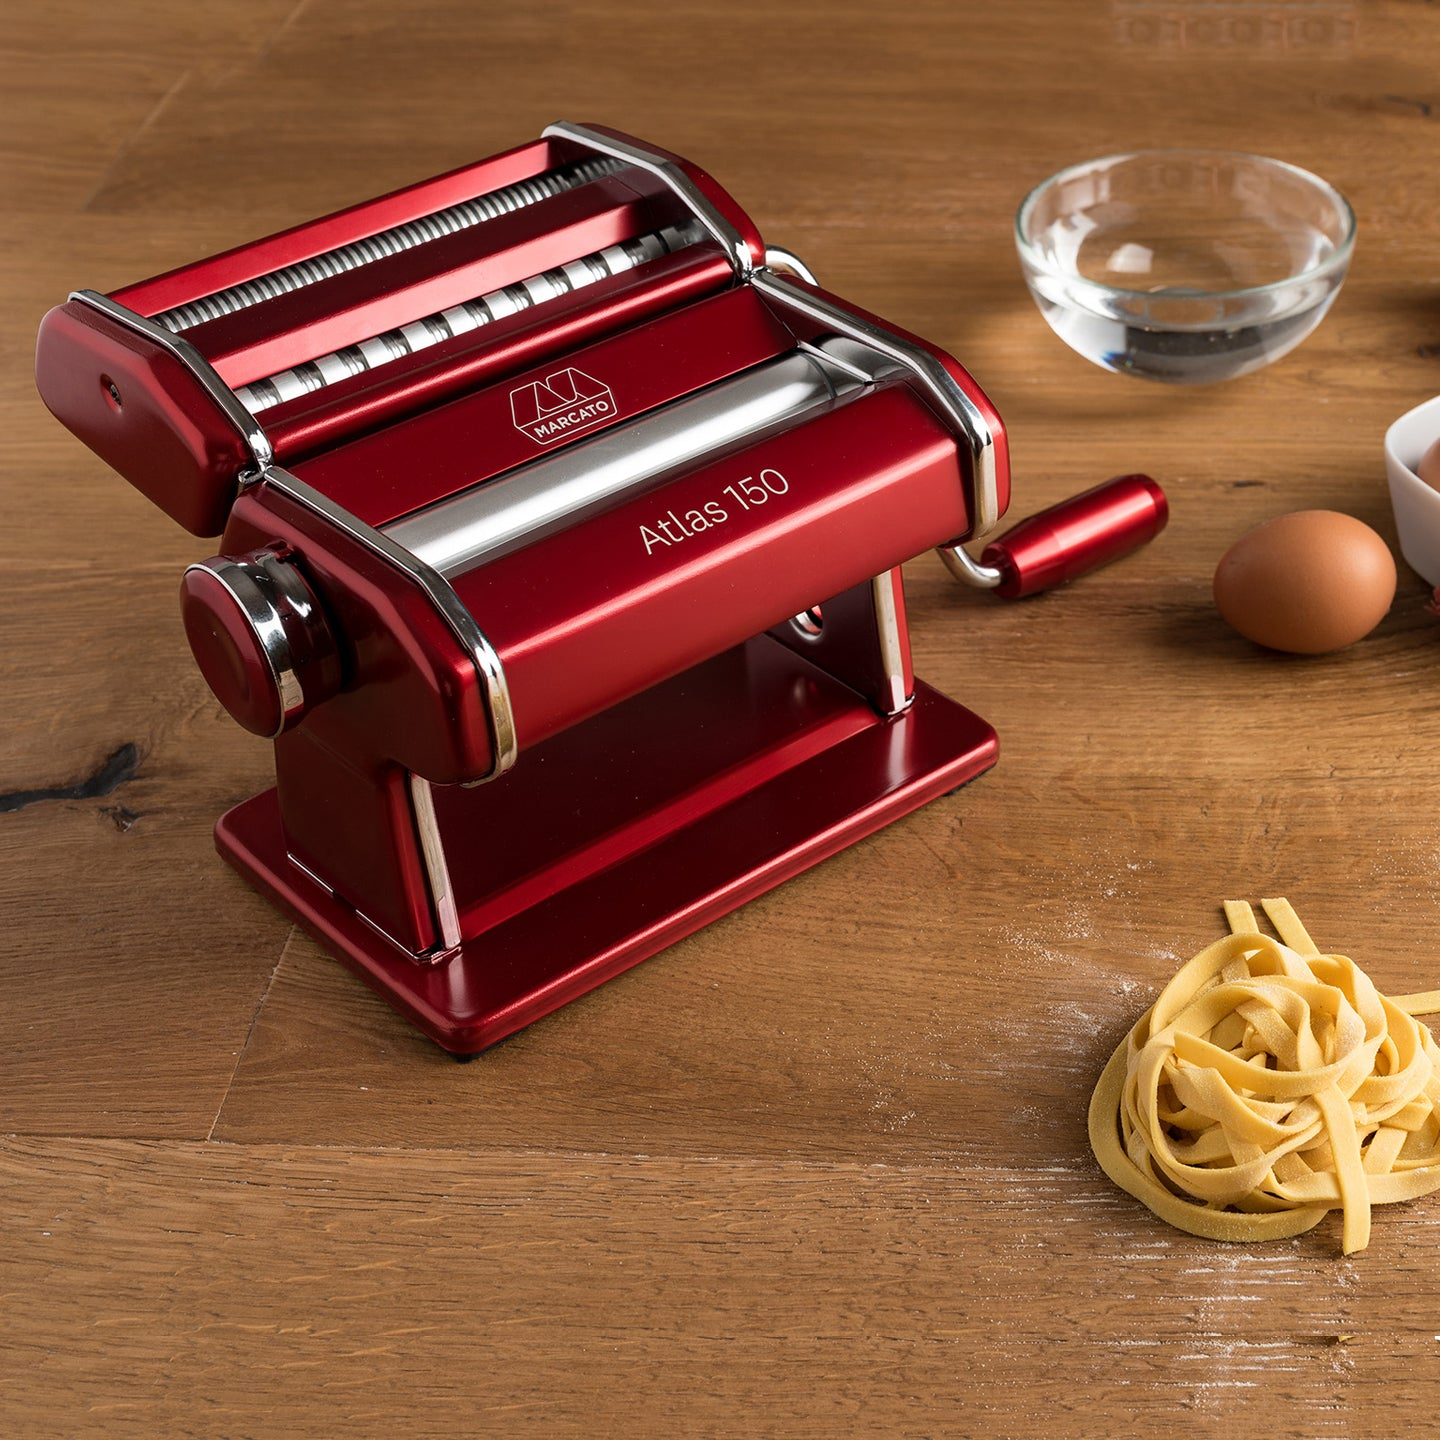 Marcato Atlas 150 Pasta Maker / Red